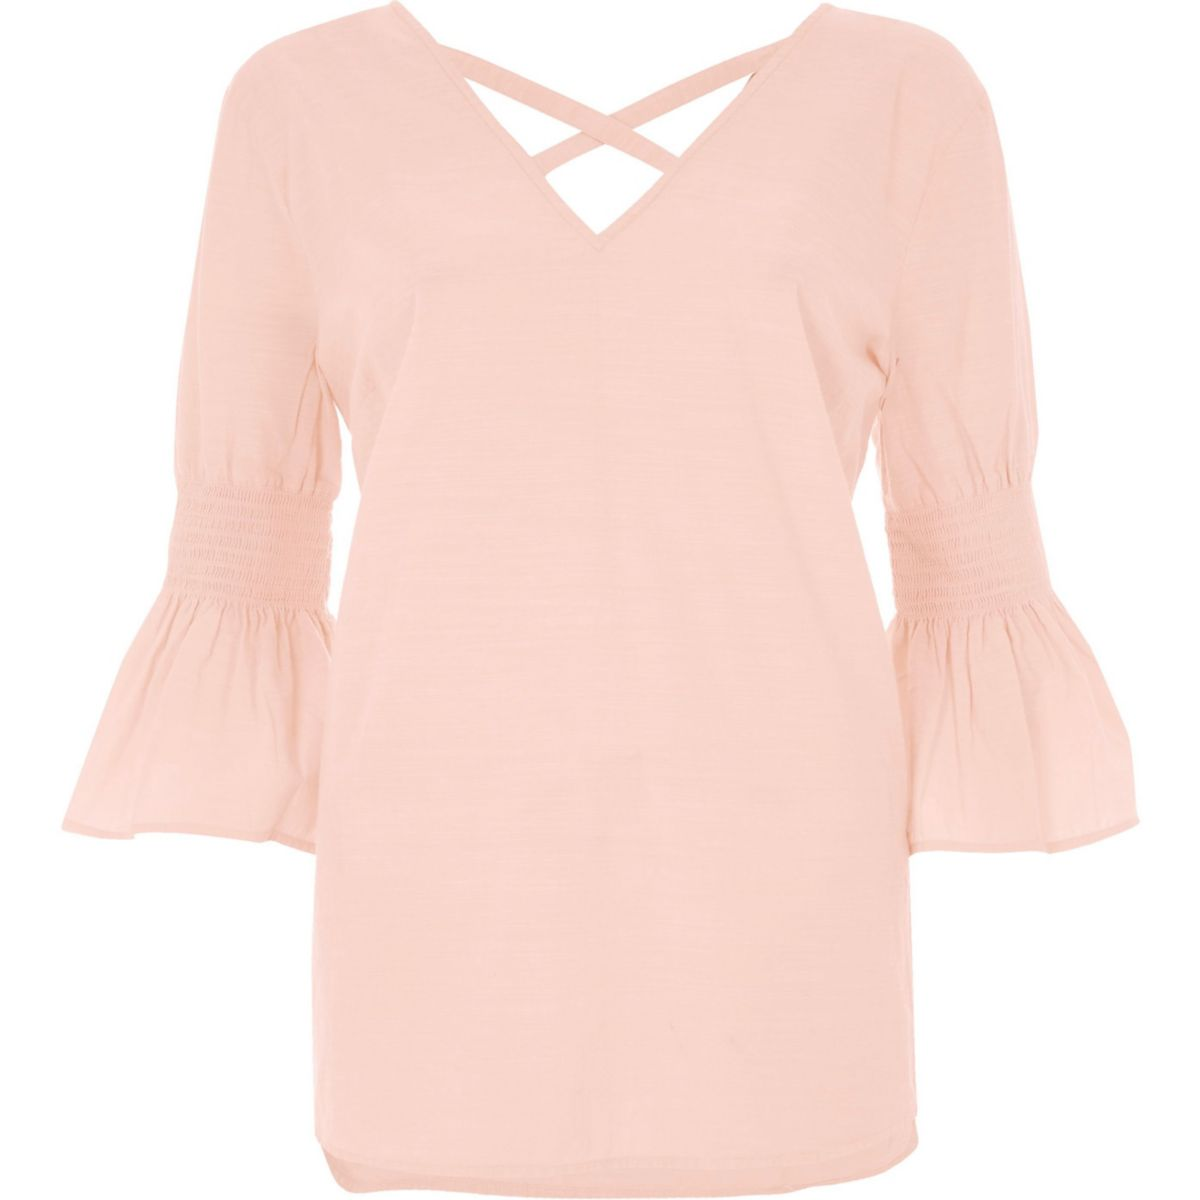 Light pink shirred bell sleeve top